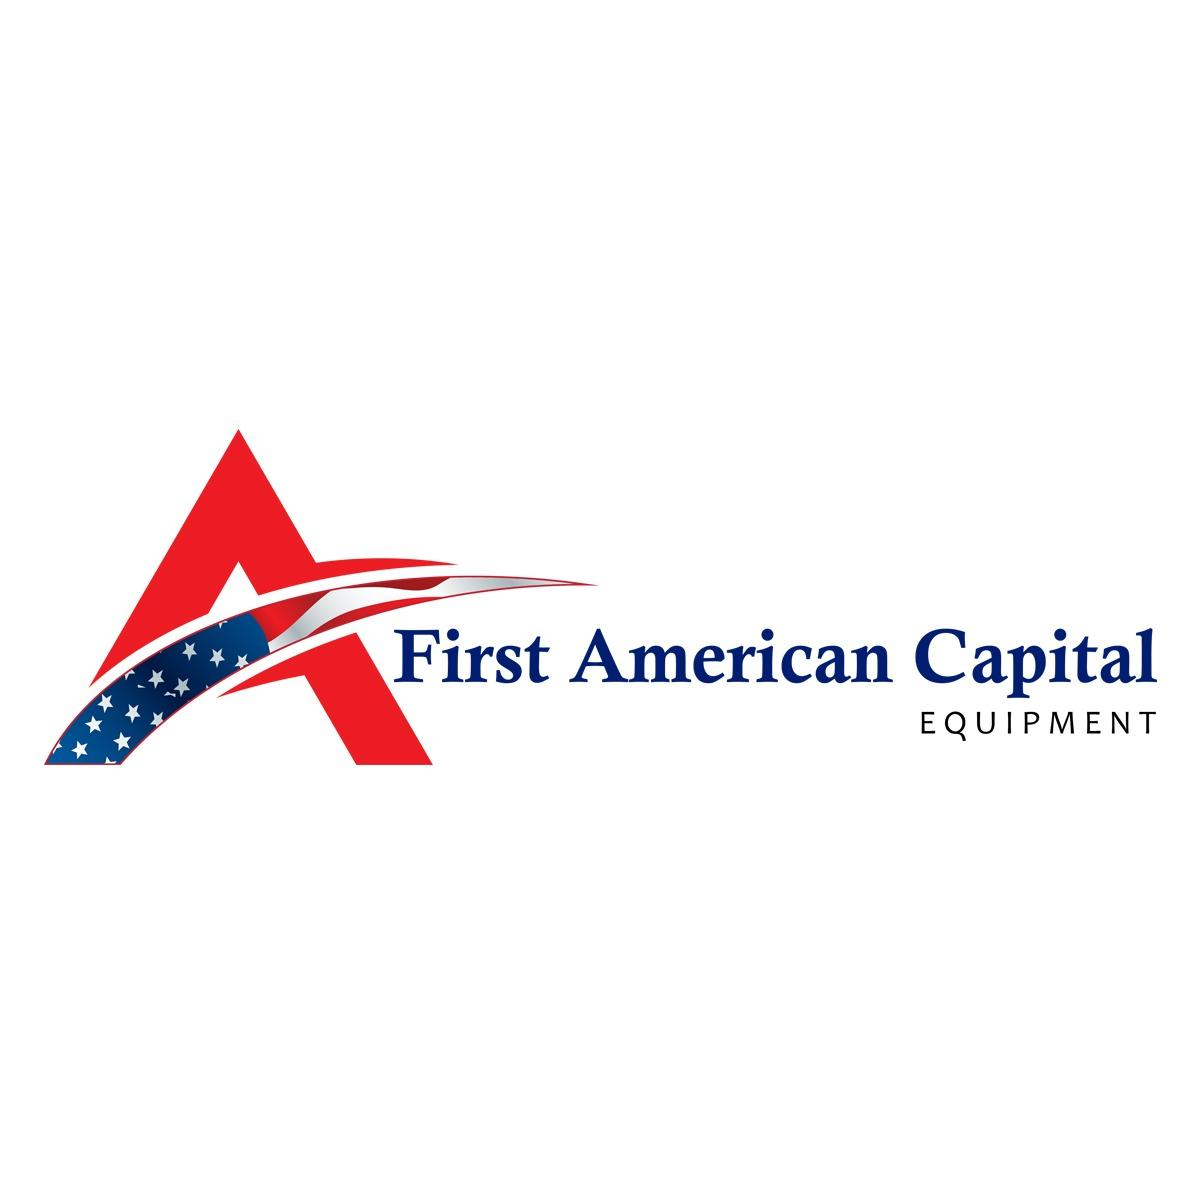 First American Capital Equipment